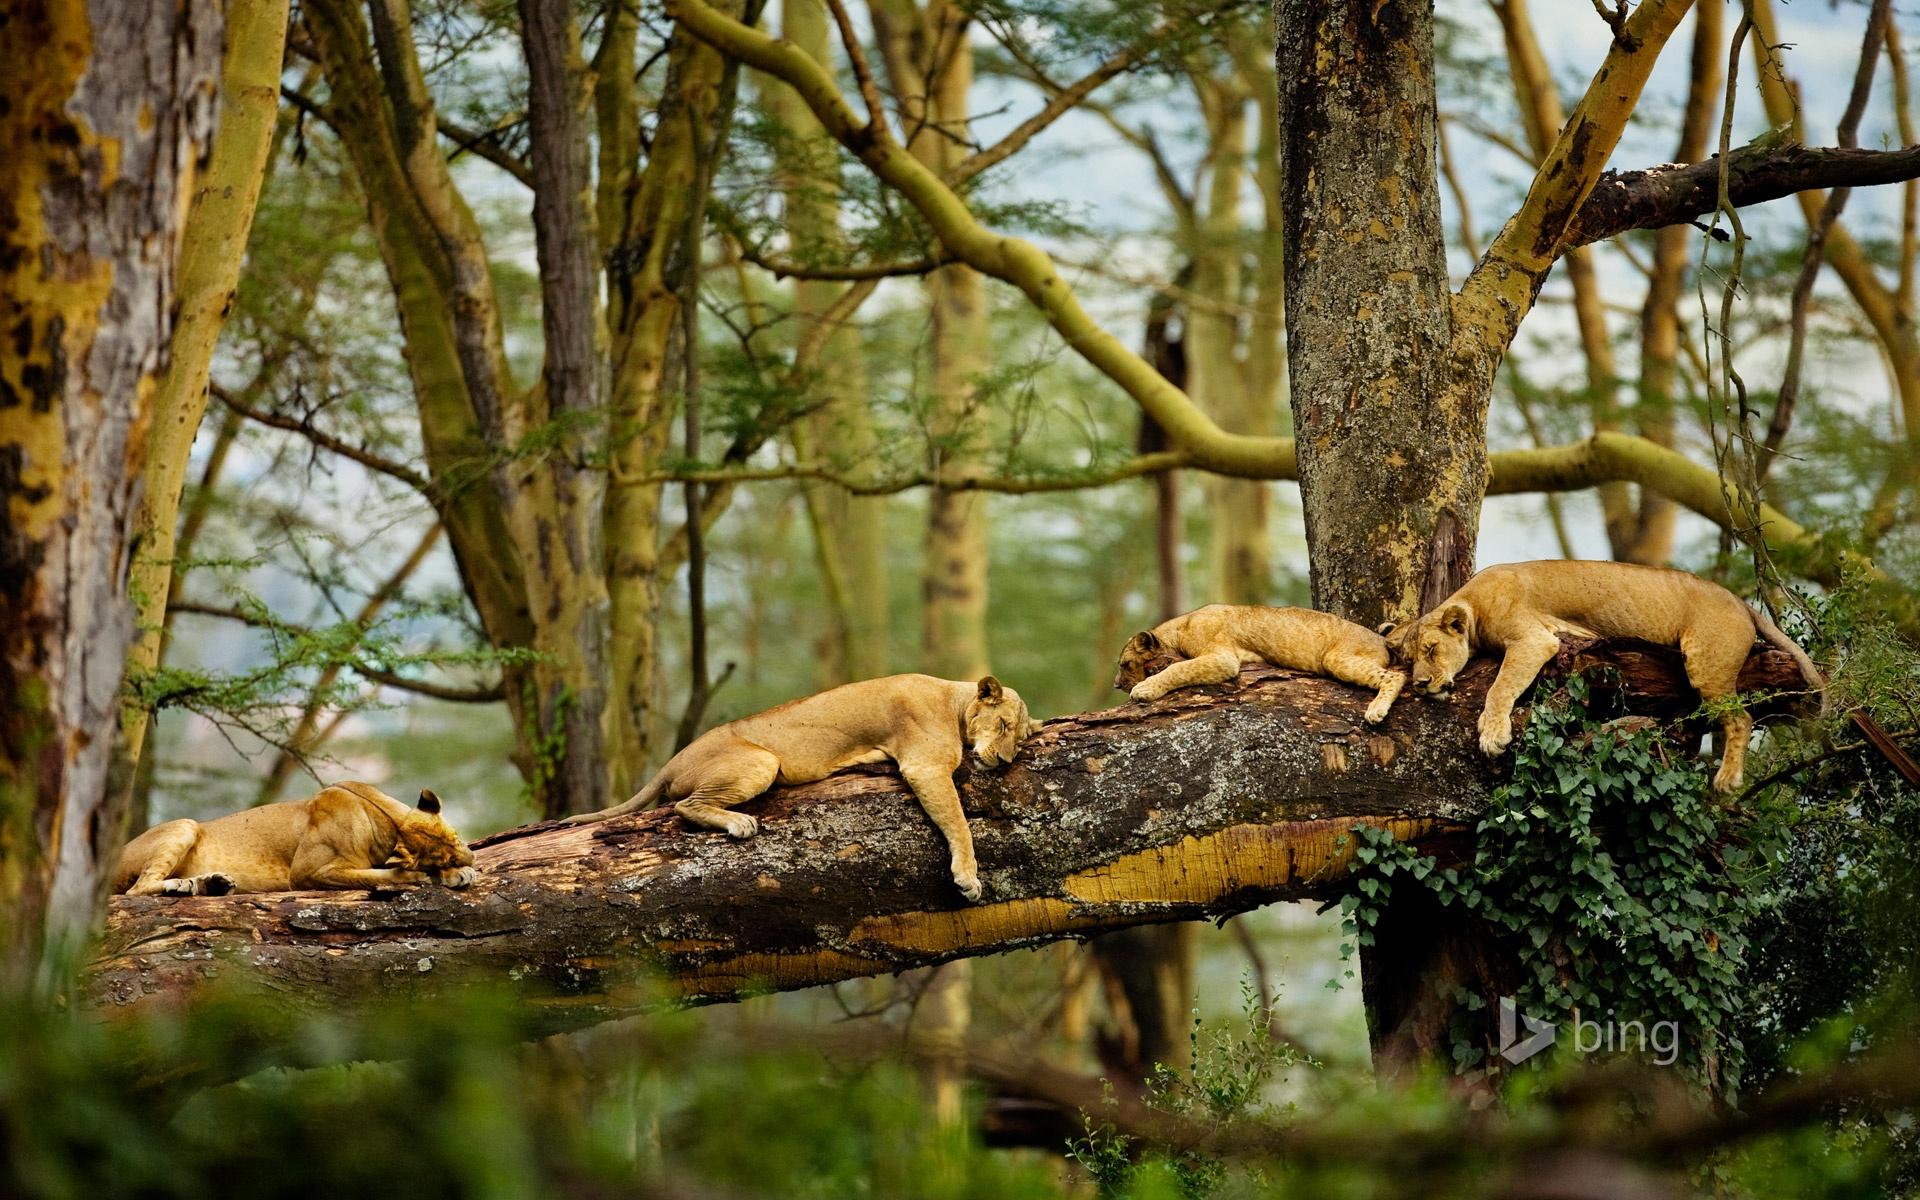 Sleeping Lions Wallpapers in jpg format for download 1920x1200